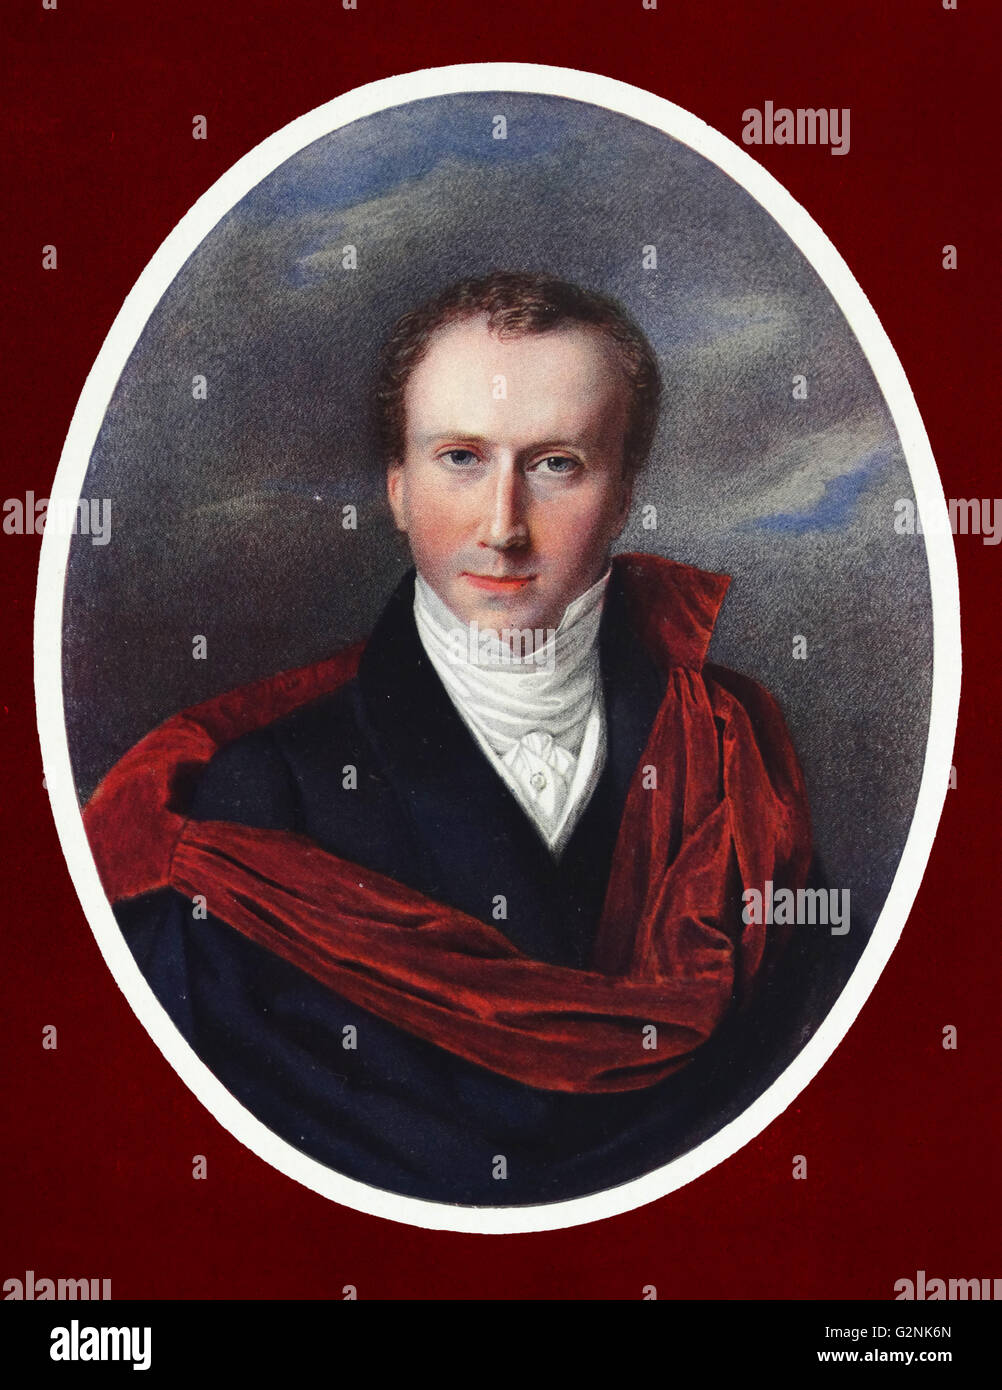 Portrait of the artist (1793-1865) by Ferdinand Georg Waldmuller (1793-1865) an Austrian painter and writer. - Stock Image